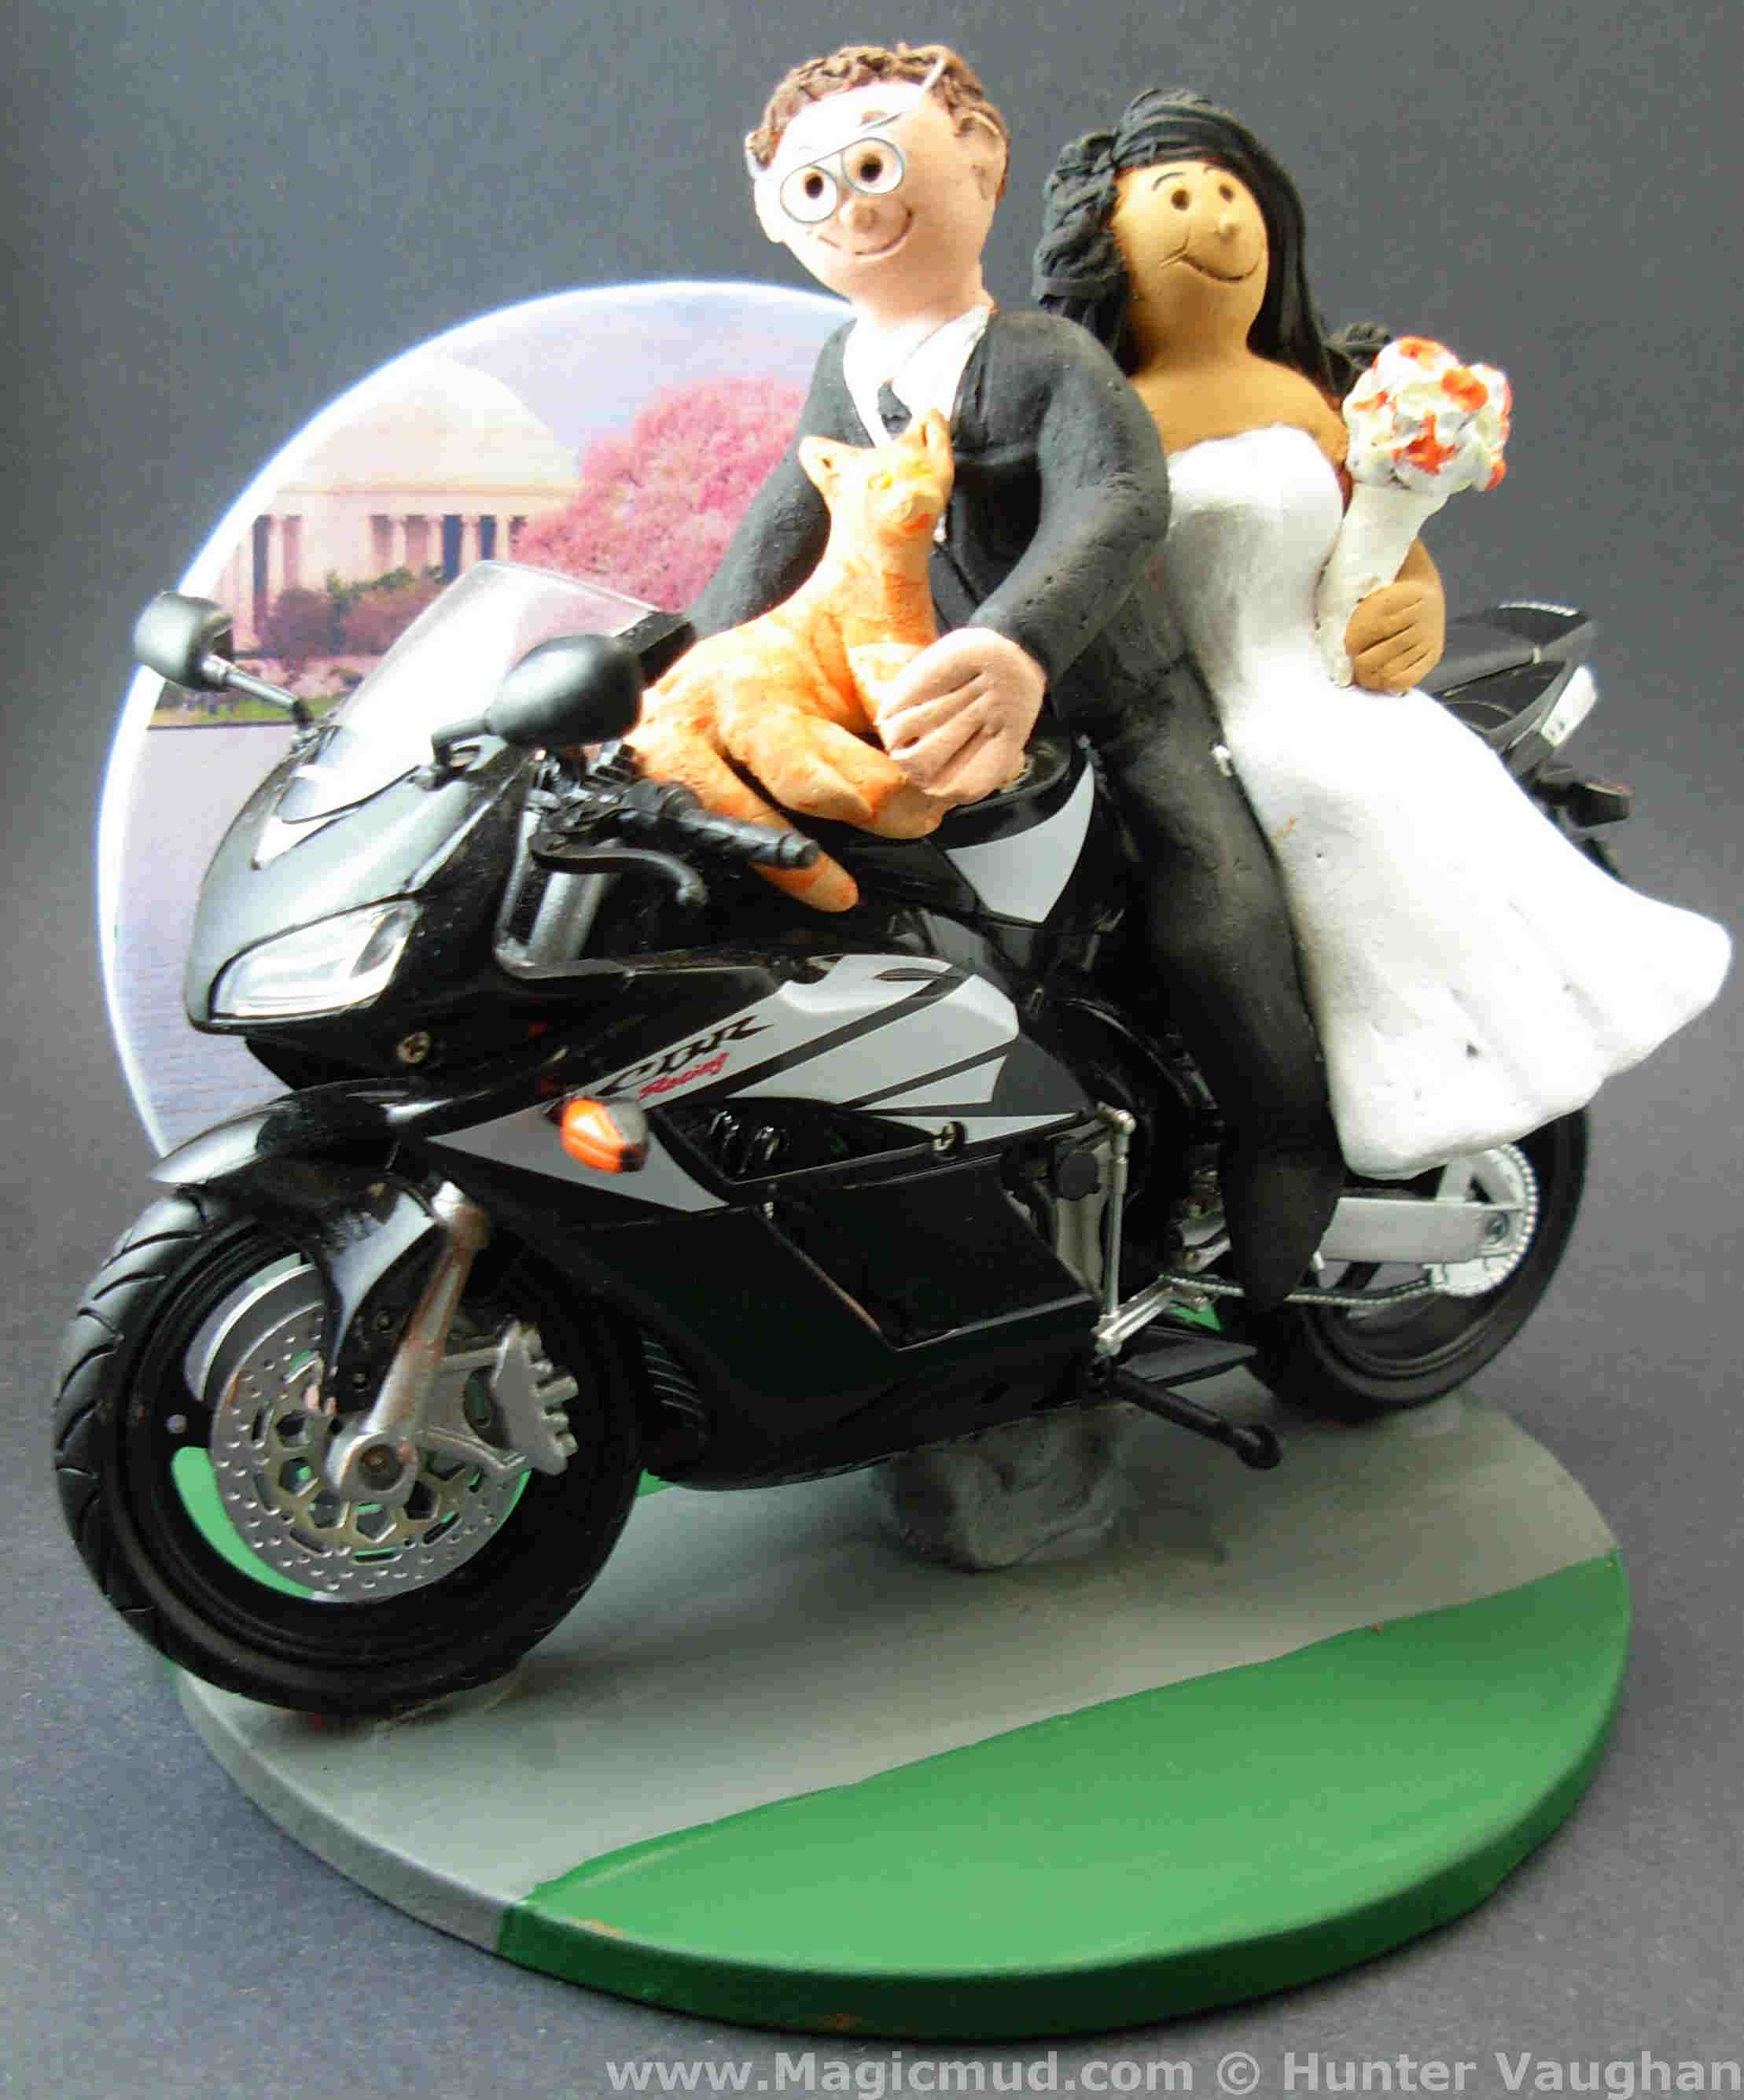 Sportbike Motorcycle Wedding Cake Topper